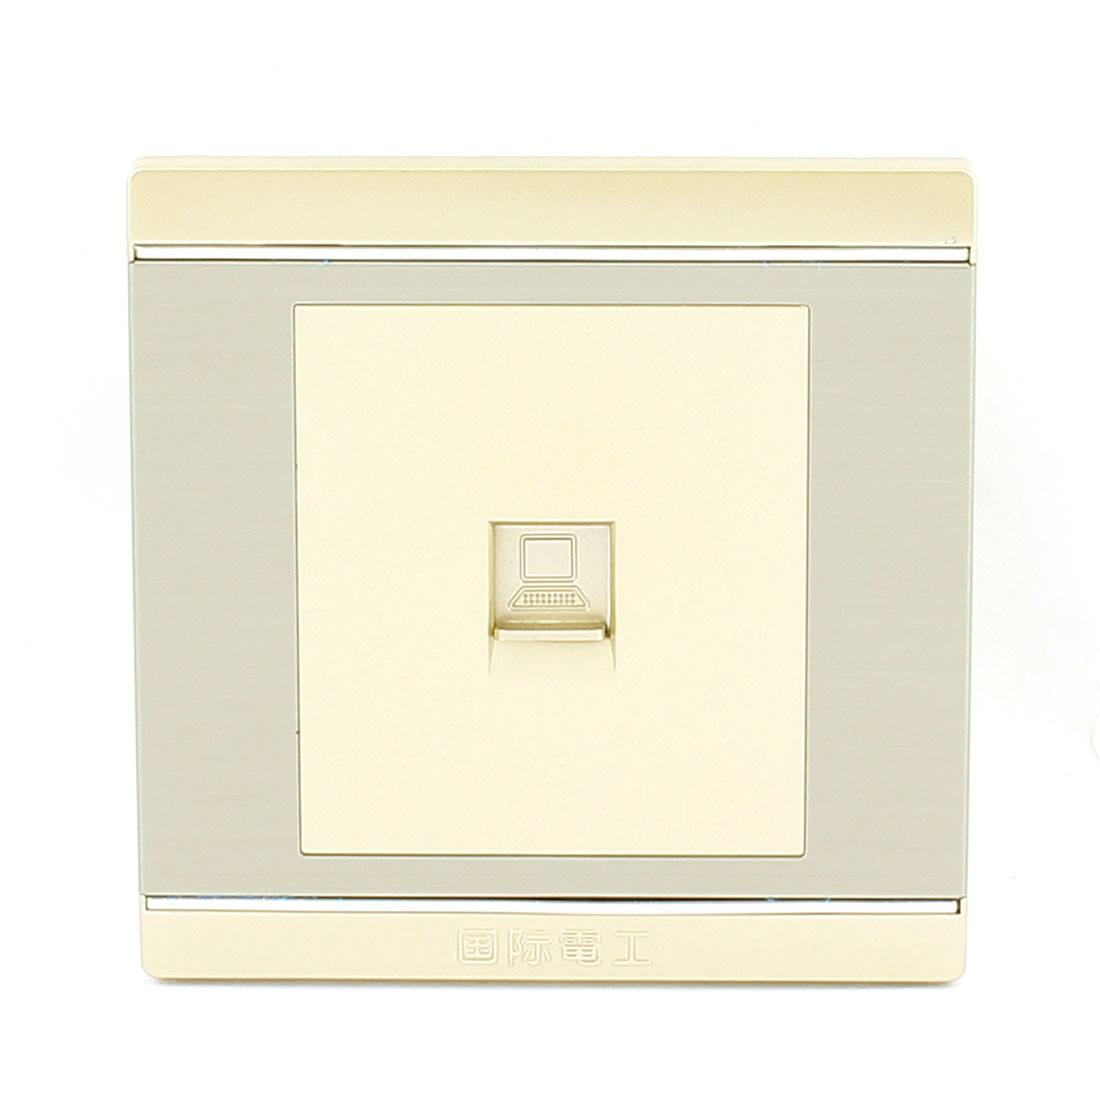 Computer RJ45 8P8C Single Gauge Wall Mount Plate Panel 86 x 86mm